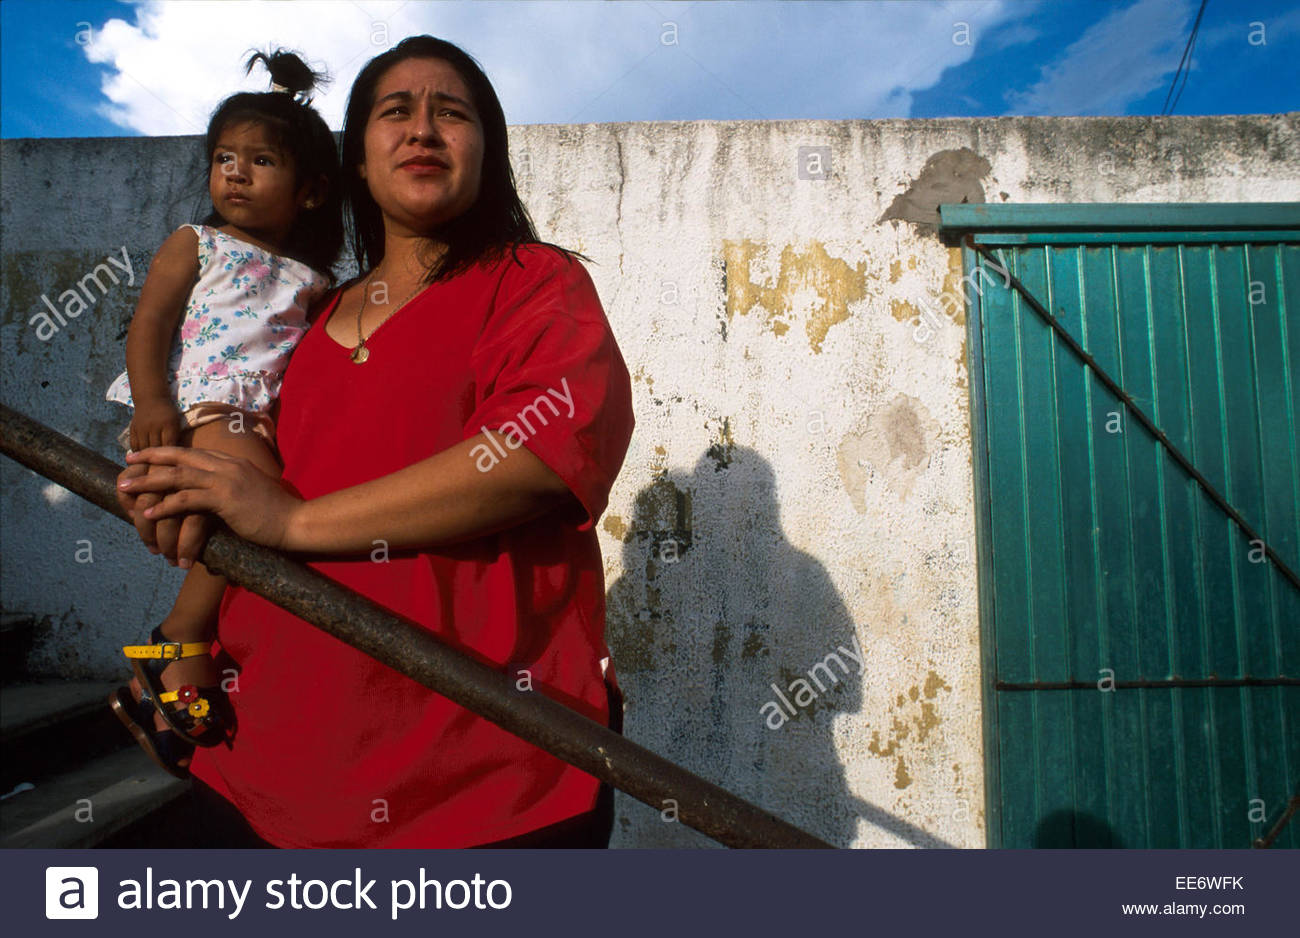 Mexcaltitan, Mother and child watching the basketball match - Stock Image